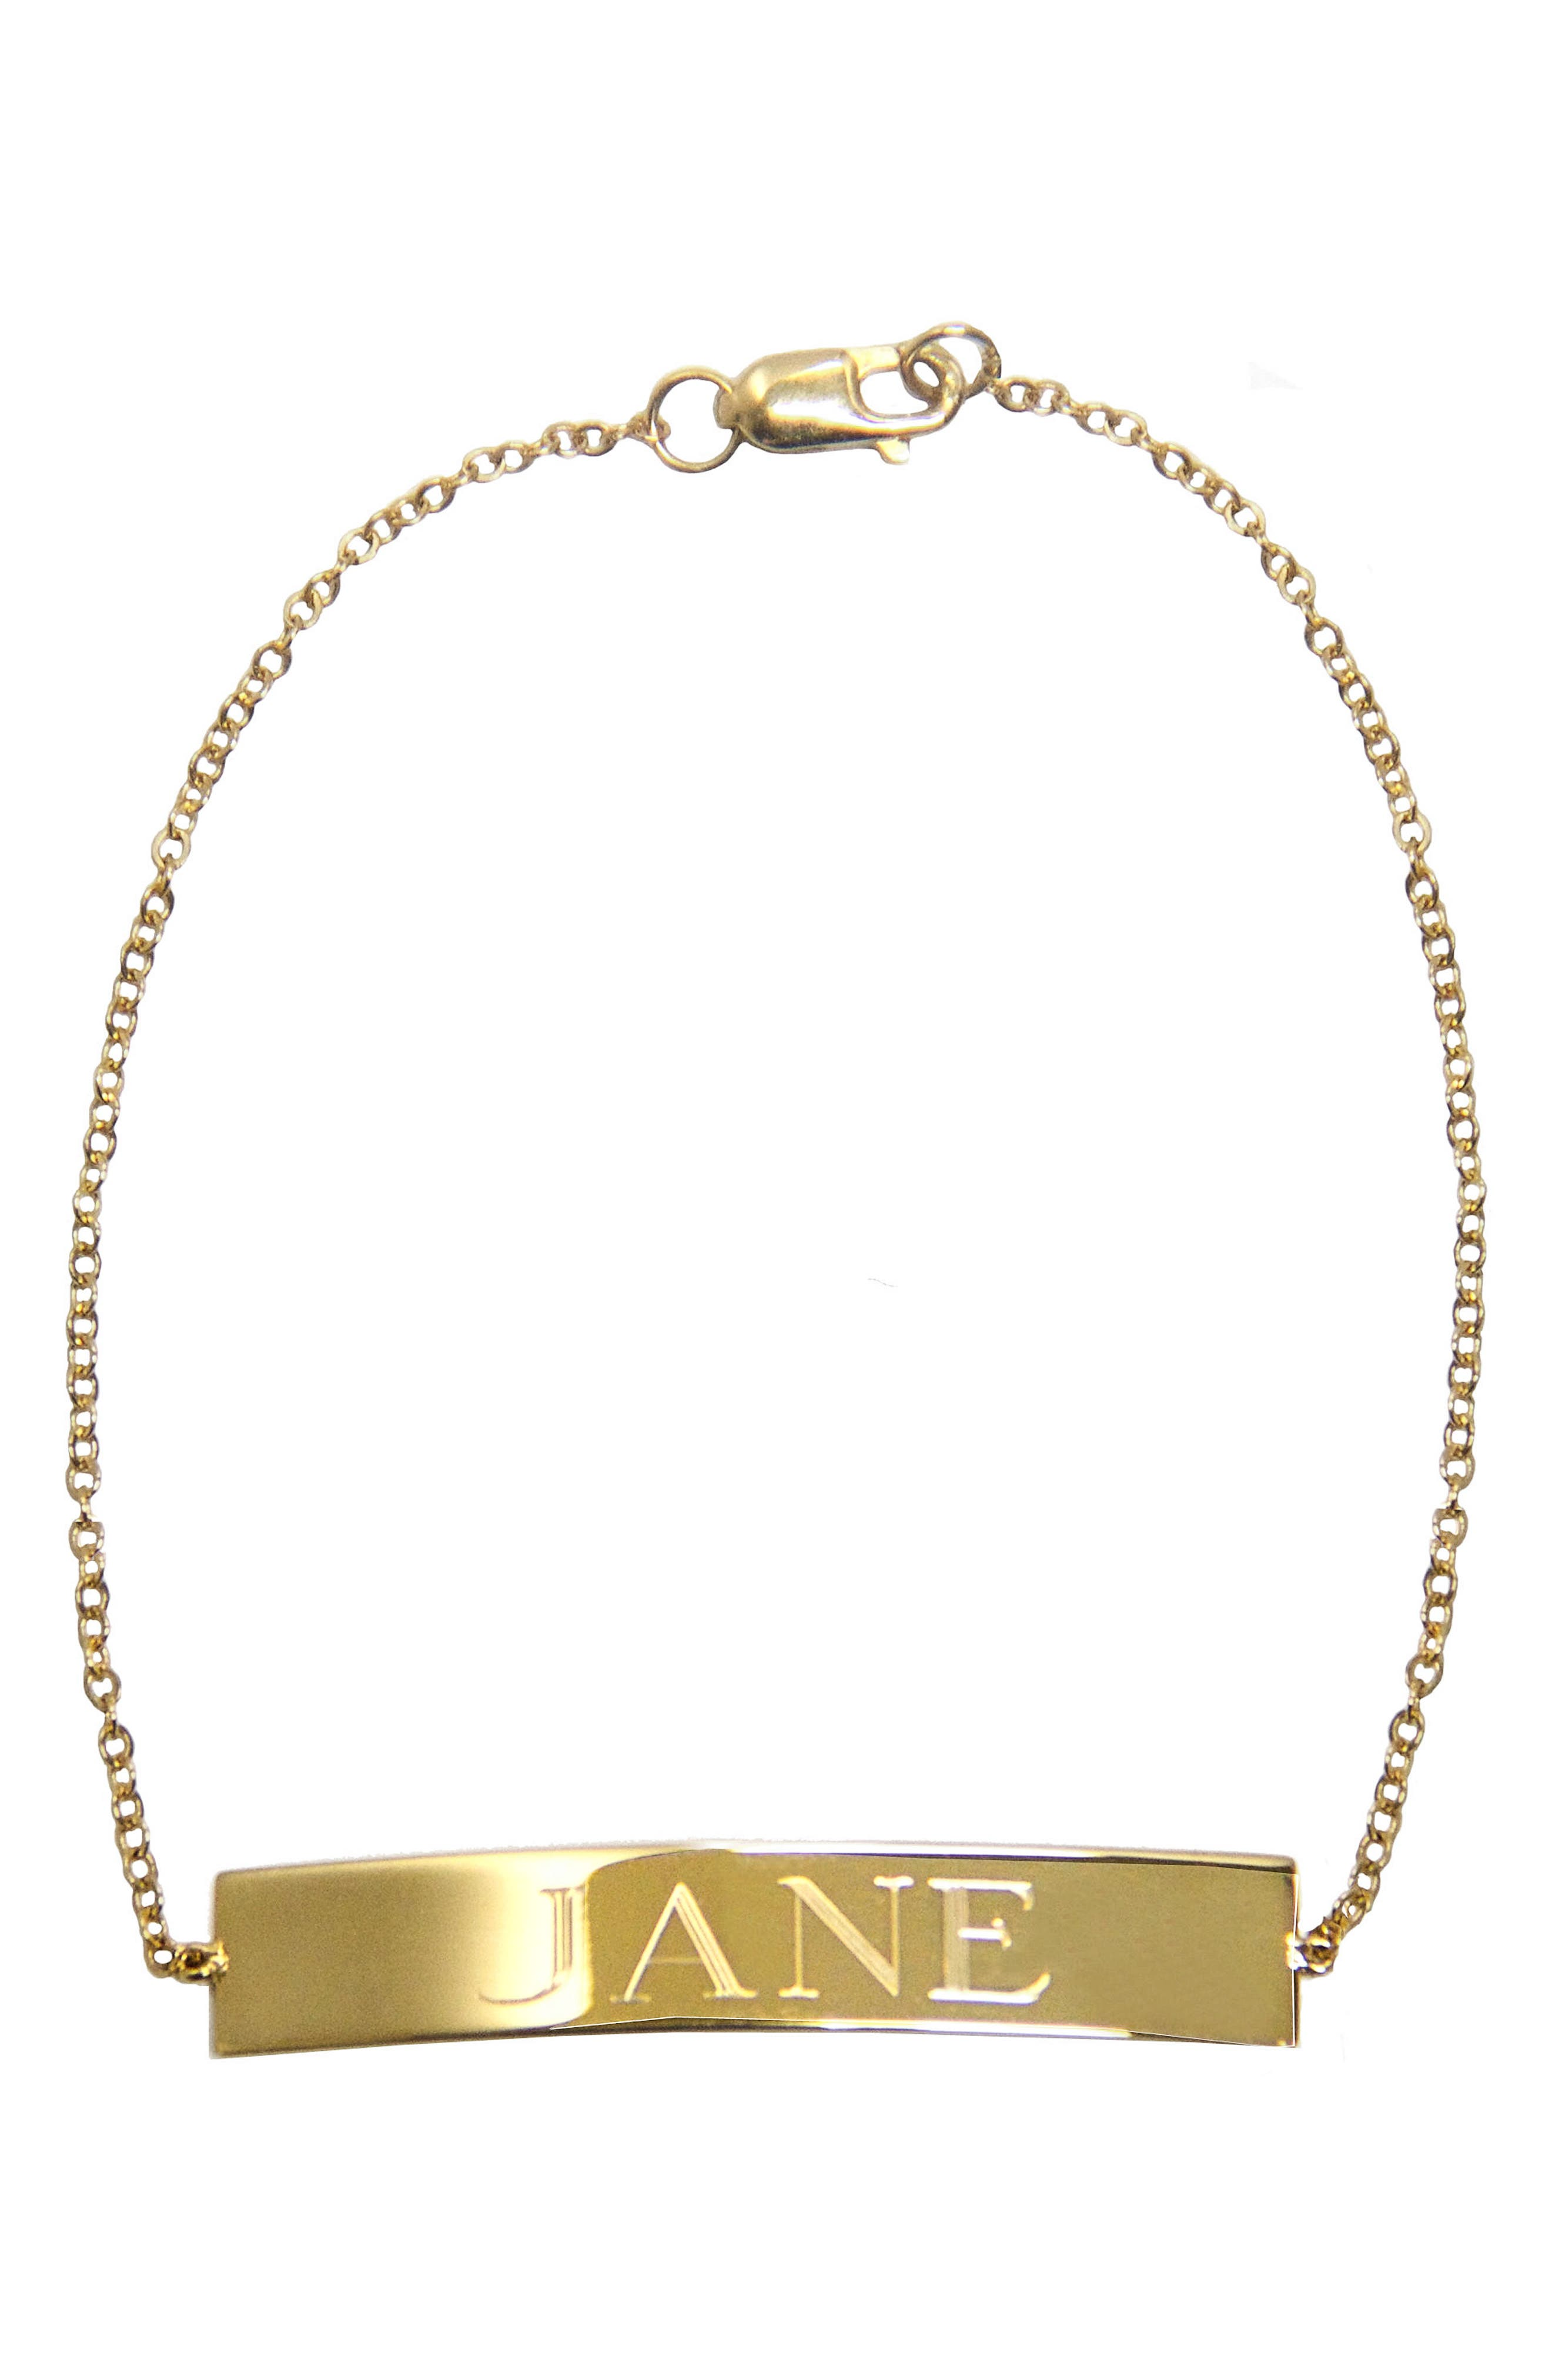 Jane Basch Personalized ID Bracelet,                         Main,                         color, 14K Yellow Gold